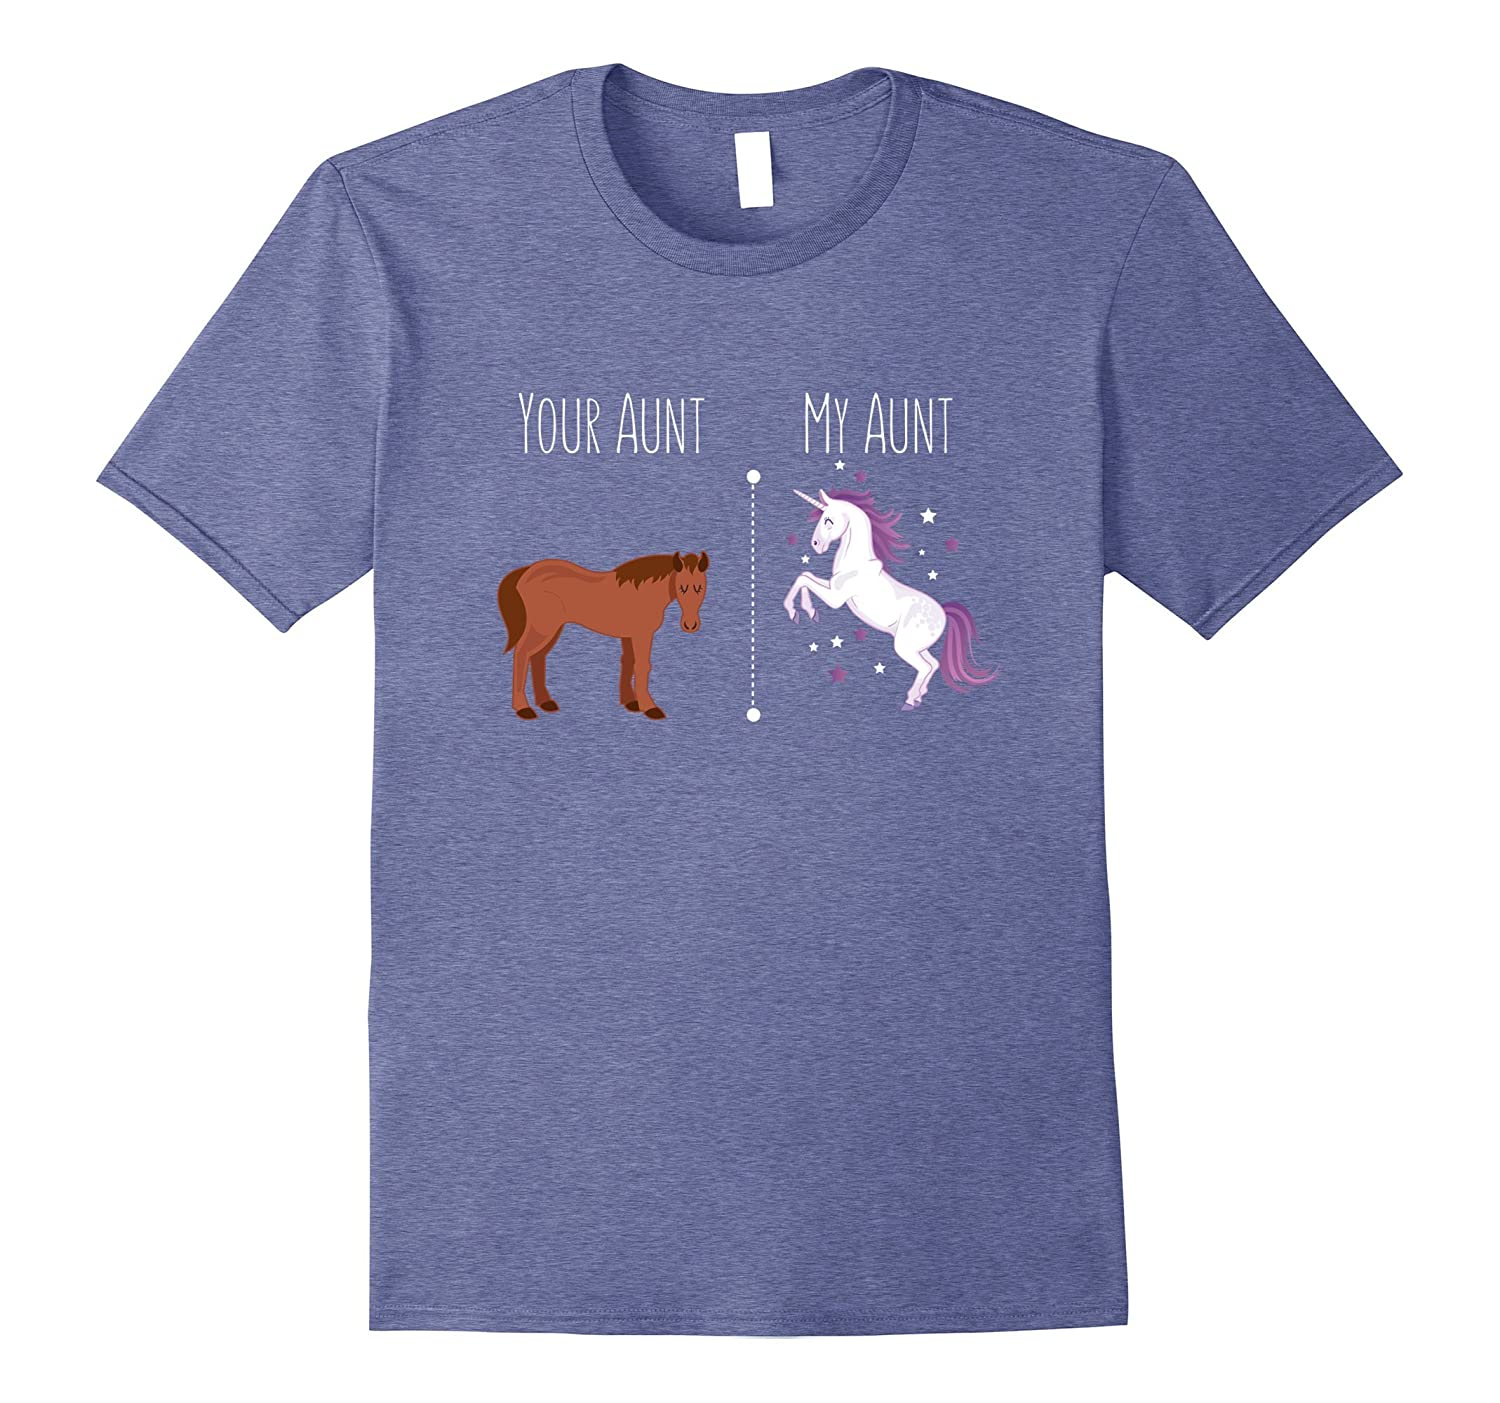 Your Aunt My Aunt Horse Unicorn Funny T-Shirt For Cool Aunt-ah my shirt one gift